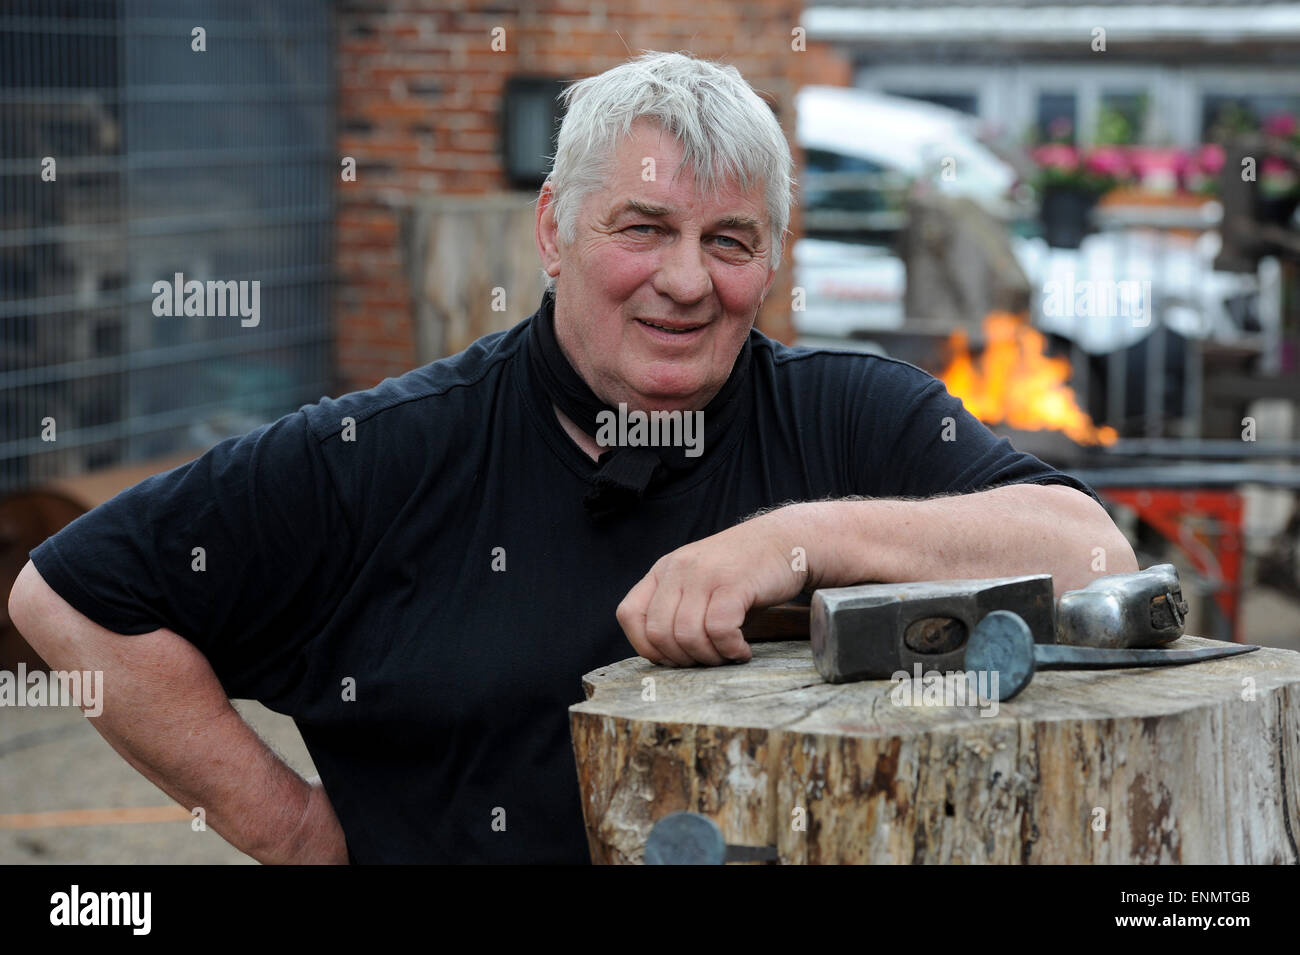 """Friesoythe, Germany. 8th May, 2015. Actor Heinz Hoenig works on a nail at the """"Bullermanns Schmiedeatelier"""" (lit. Stock Photo"""